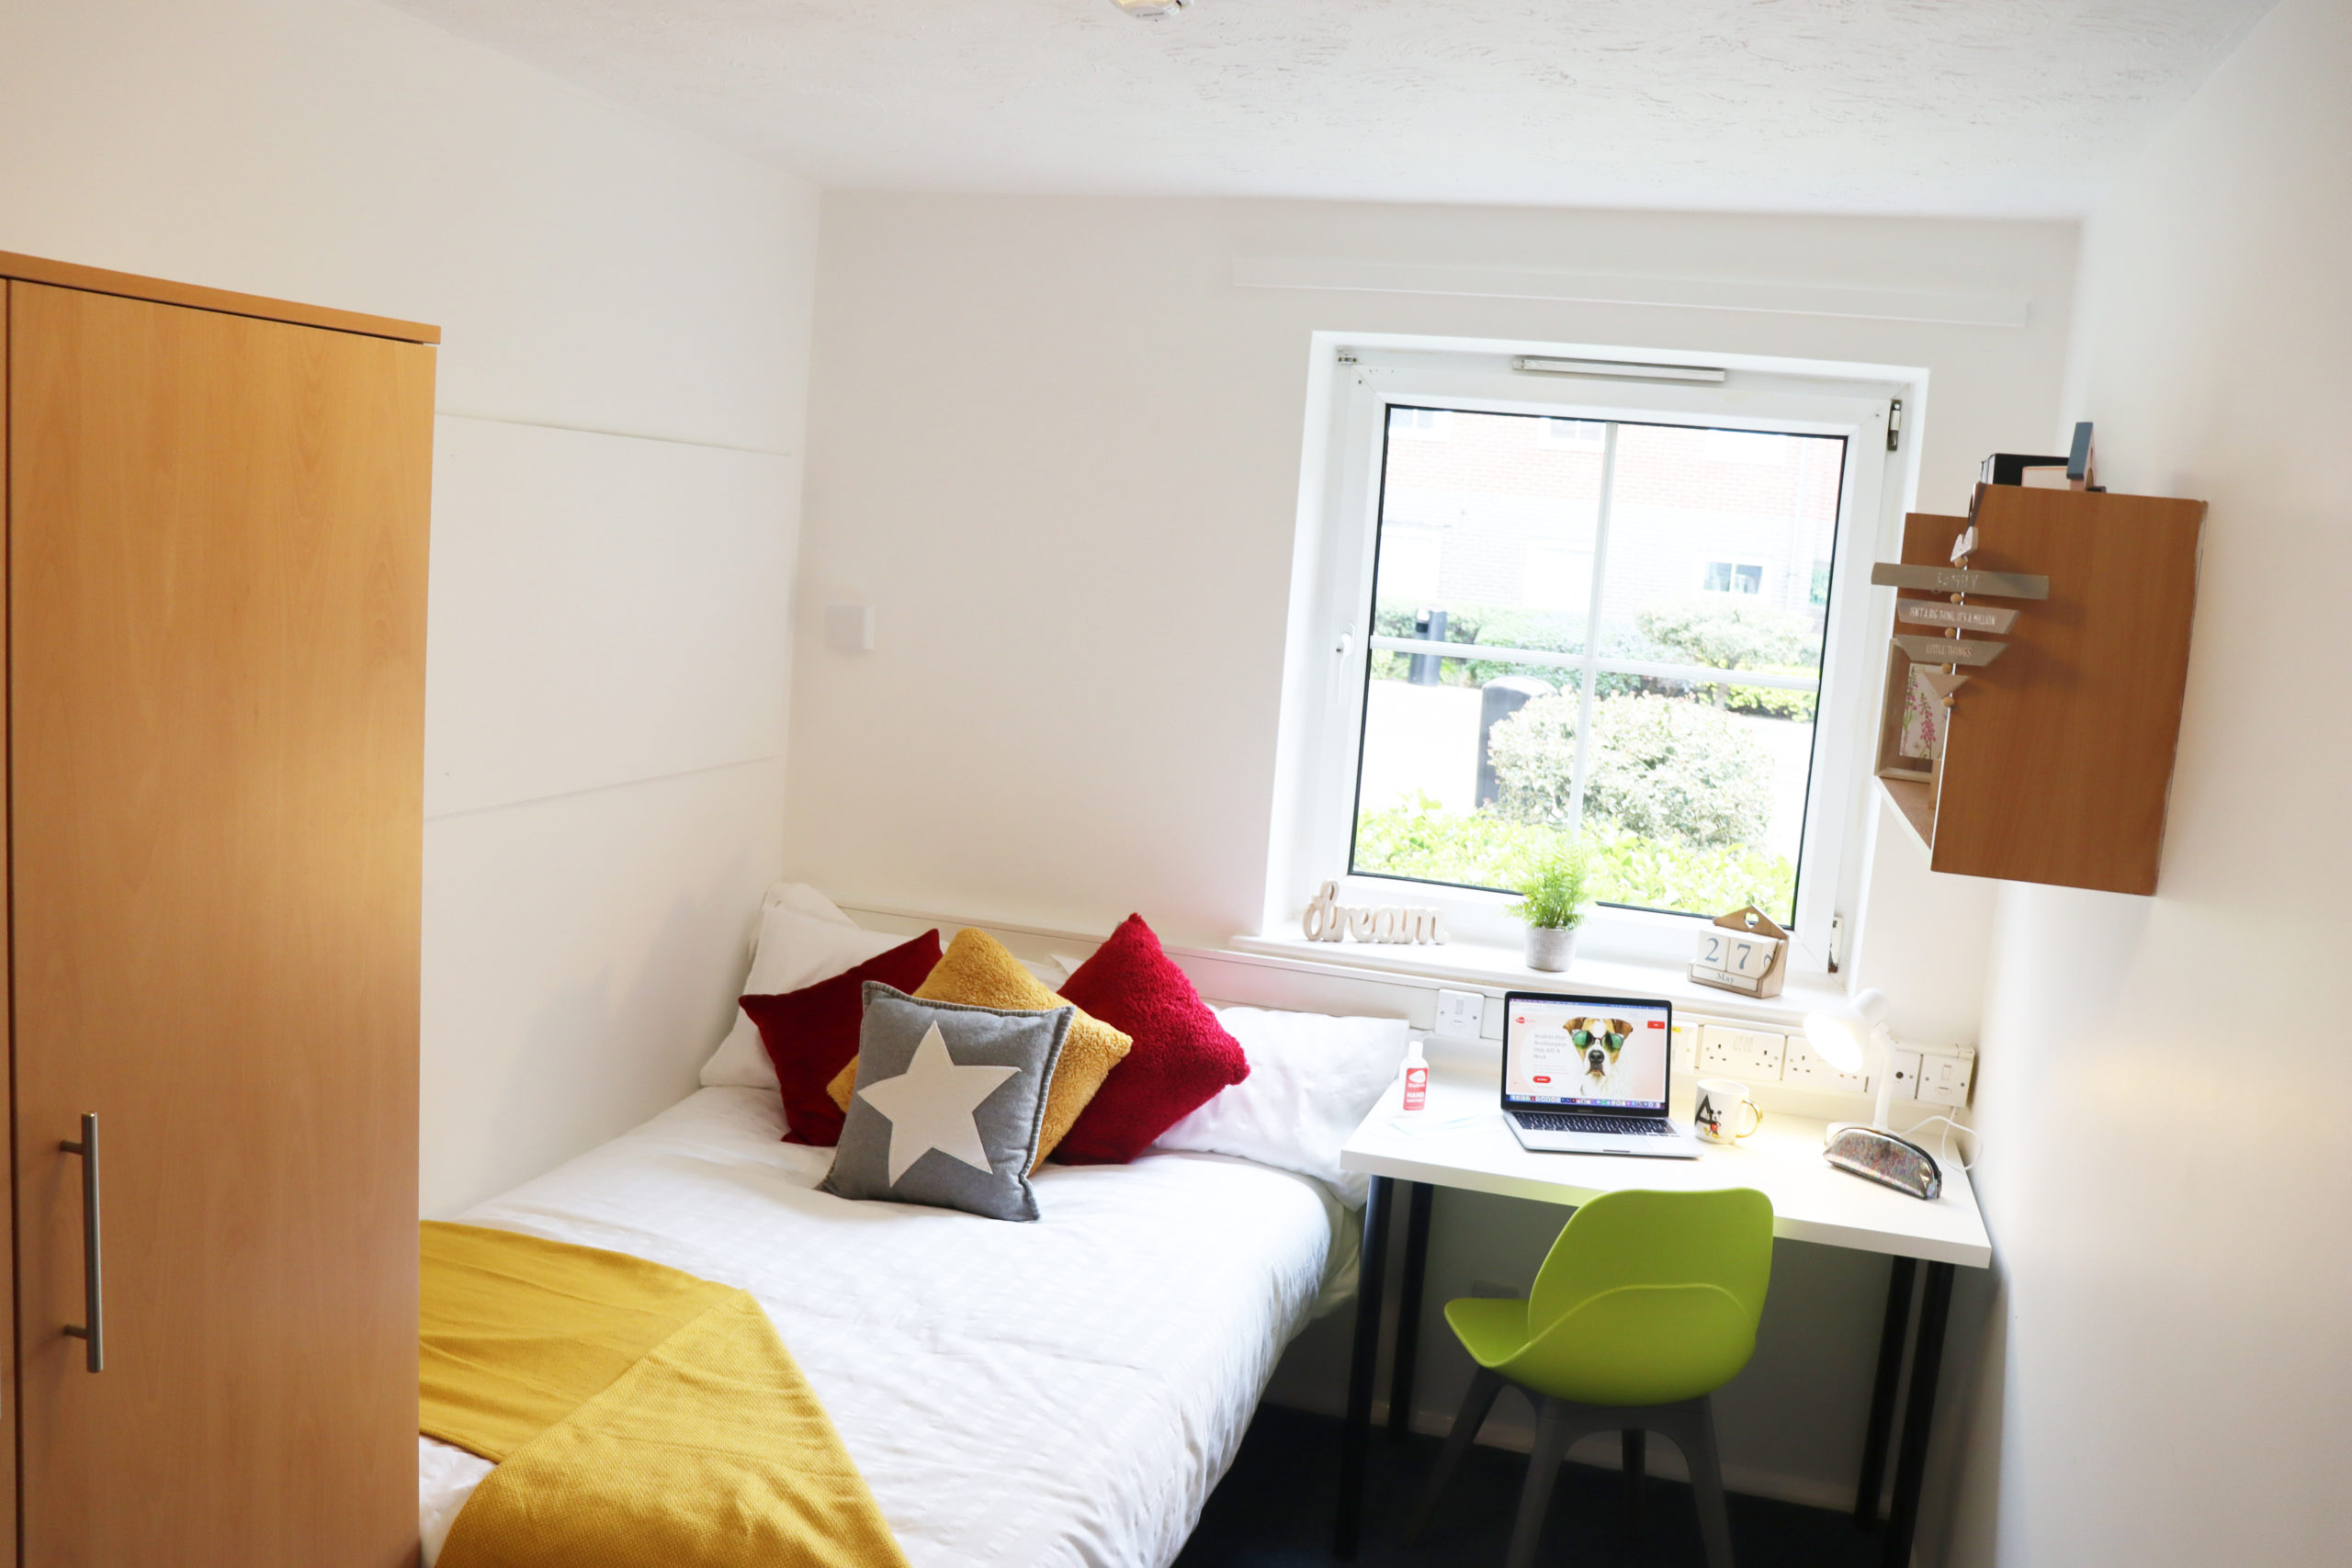 Rooms For £85